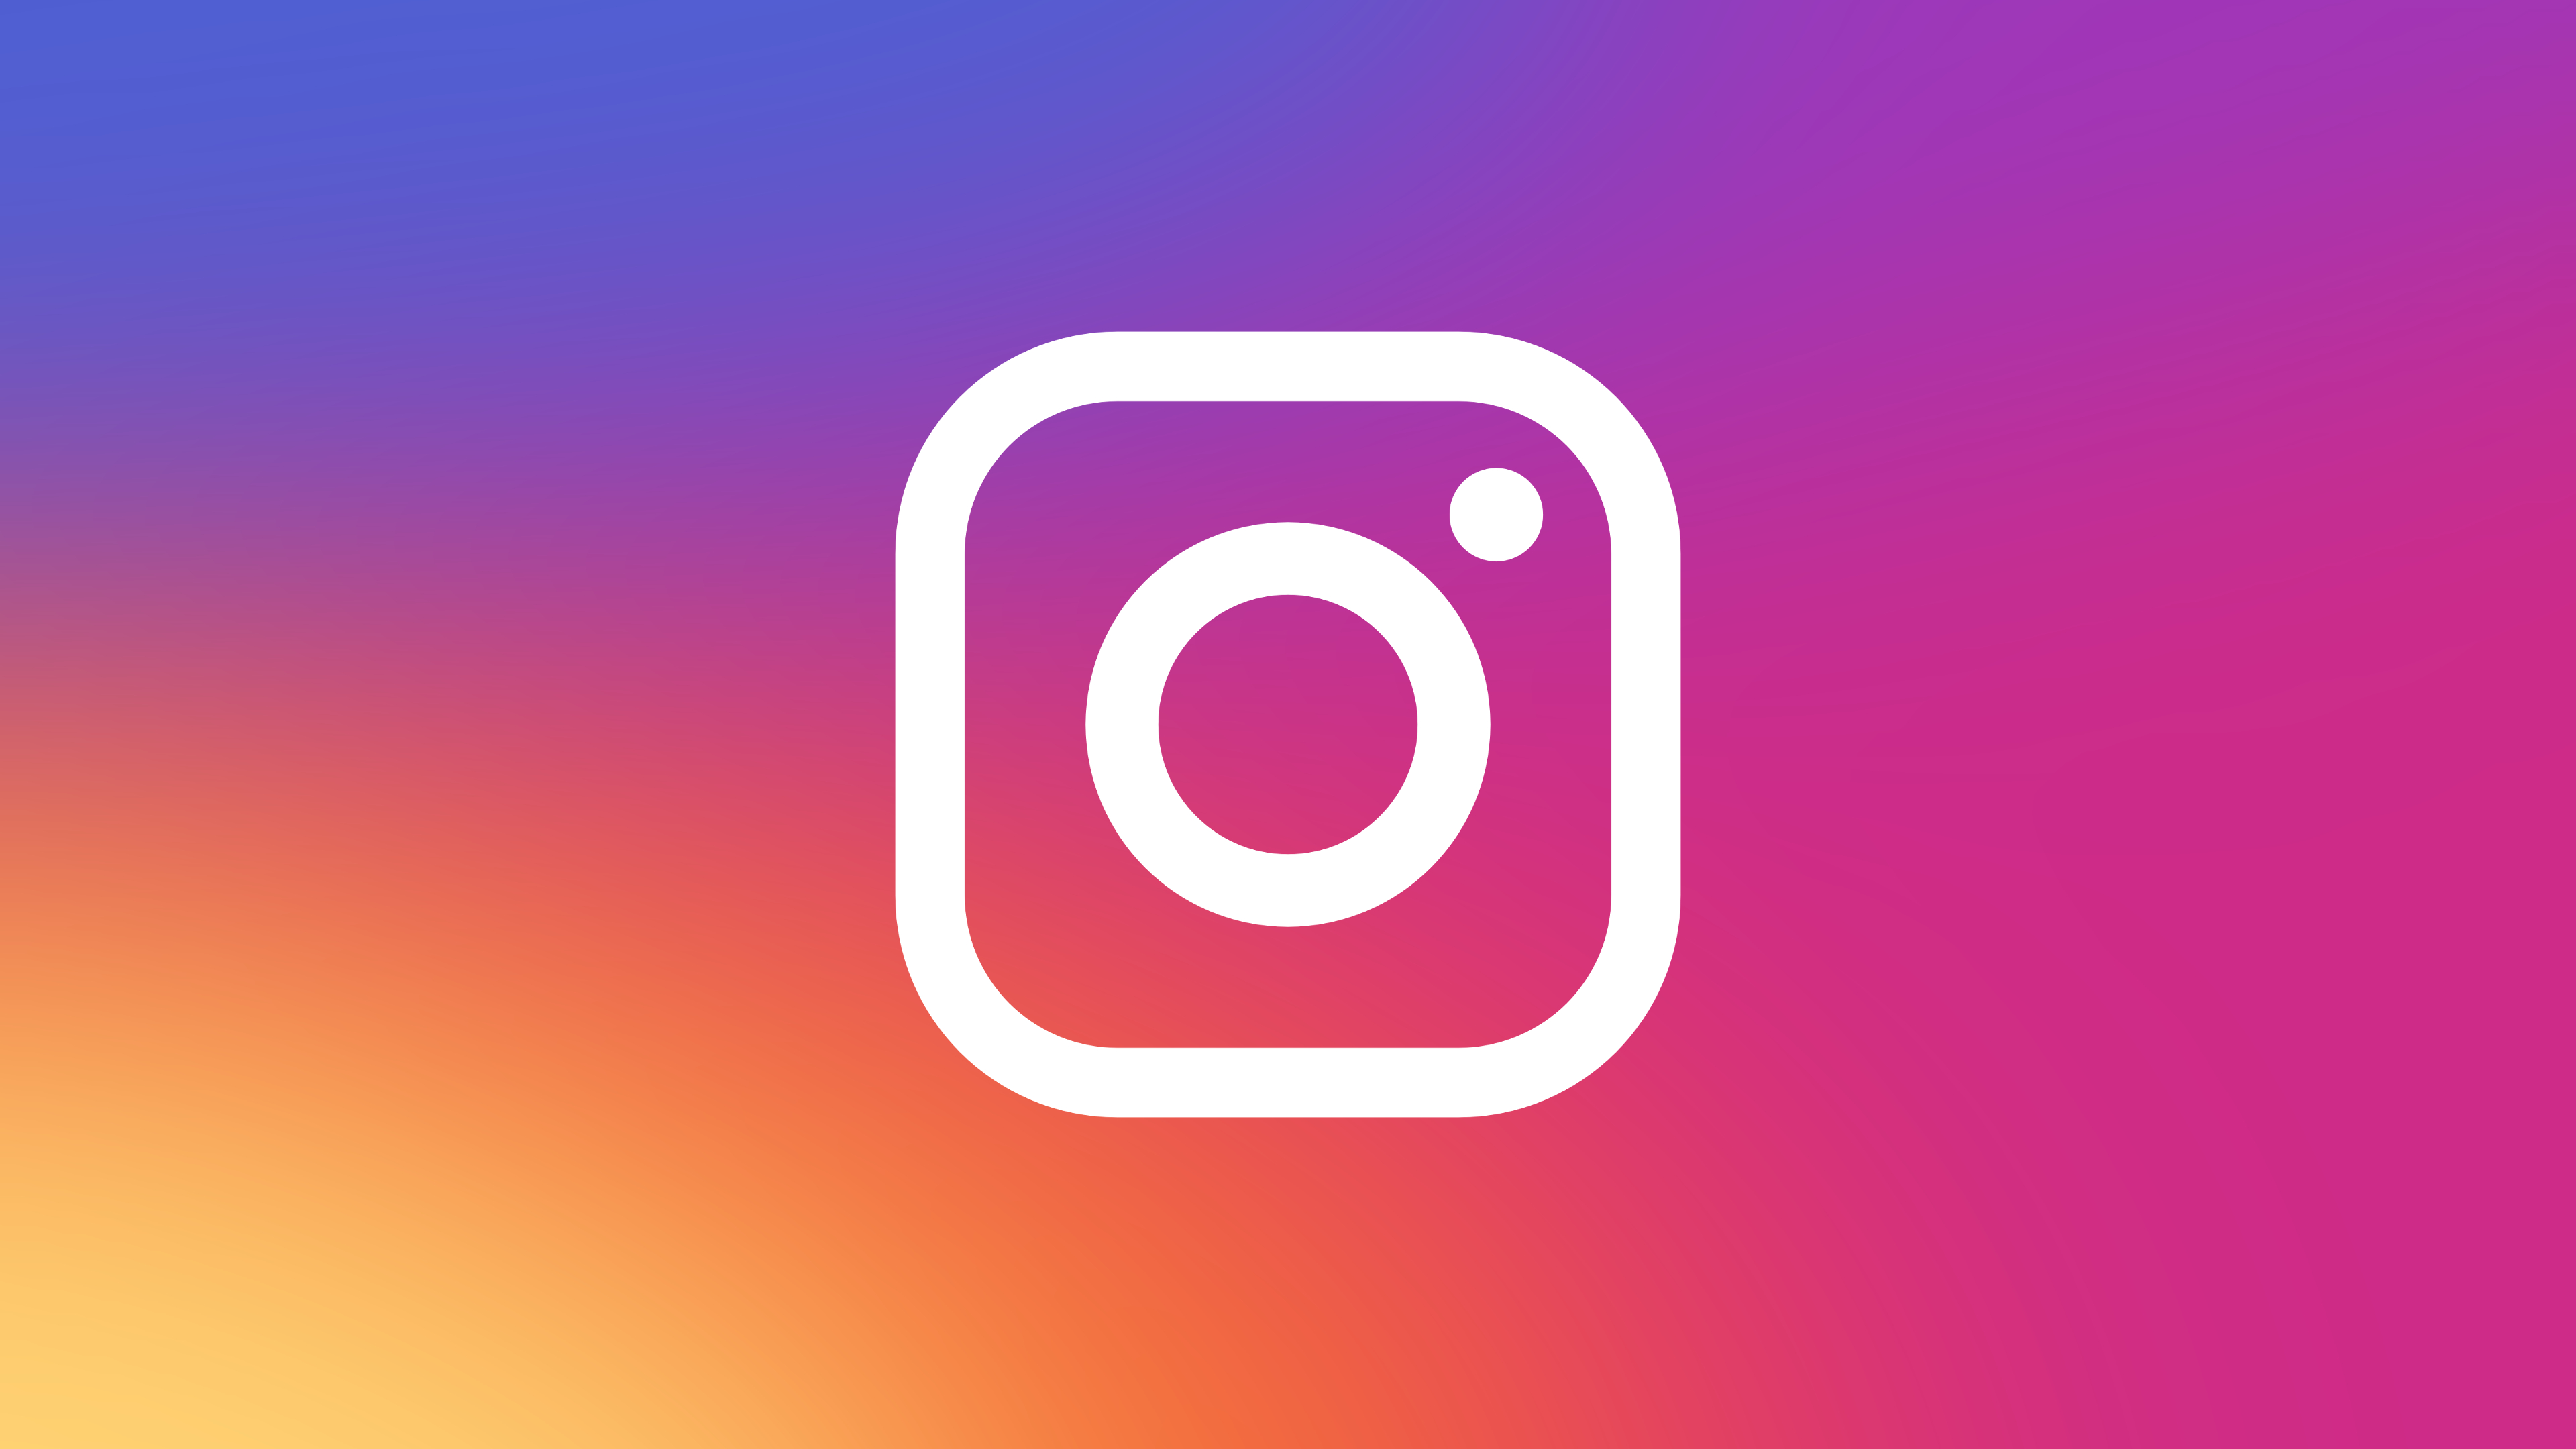 Instagram 4k, HD Logo, 4k Wallpapers, Images, Backgrounds